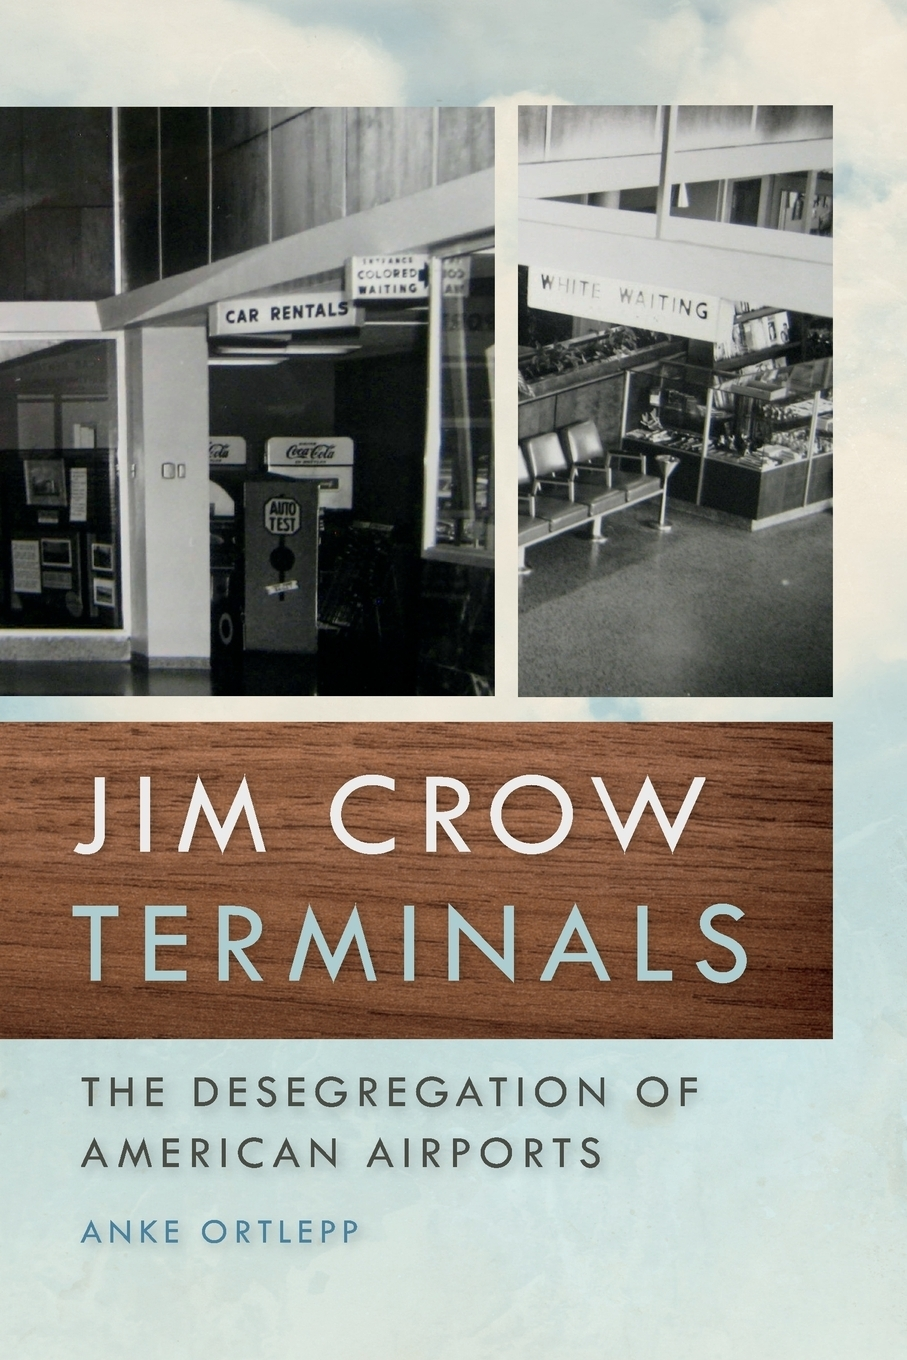 Jim Crow Terminals. The Desegregation of American Airports. Anke Ortlepp